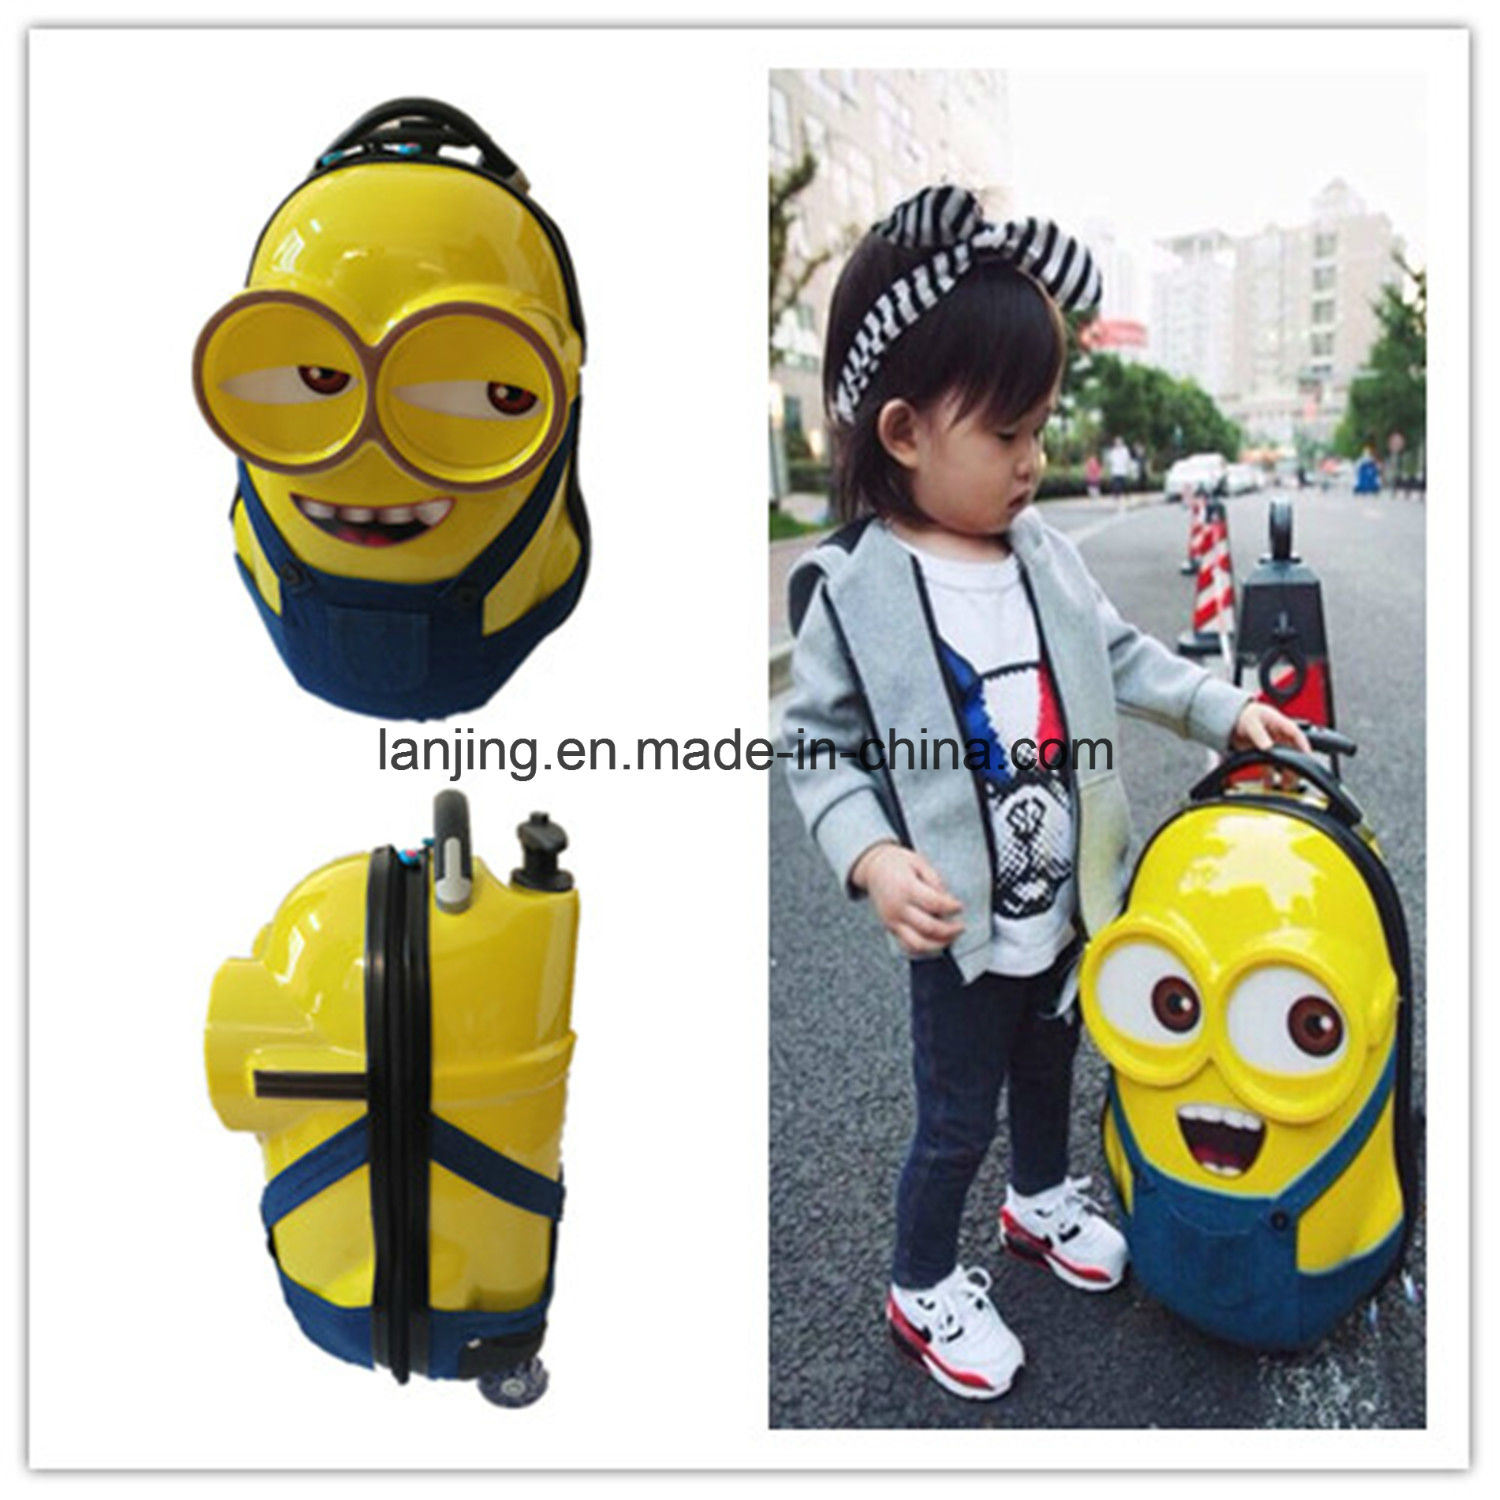 Bw253 2017 Hot Sale High Quality Minions ABS+PC Children Luggage